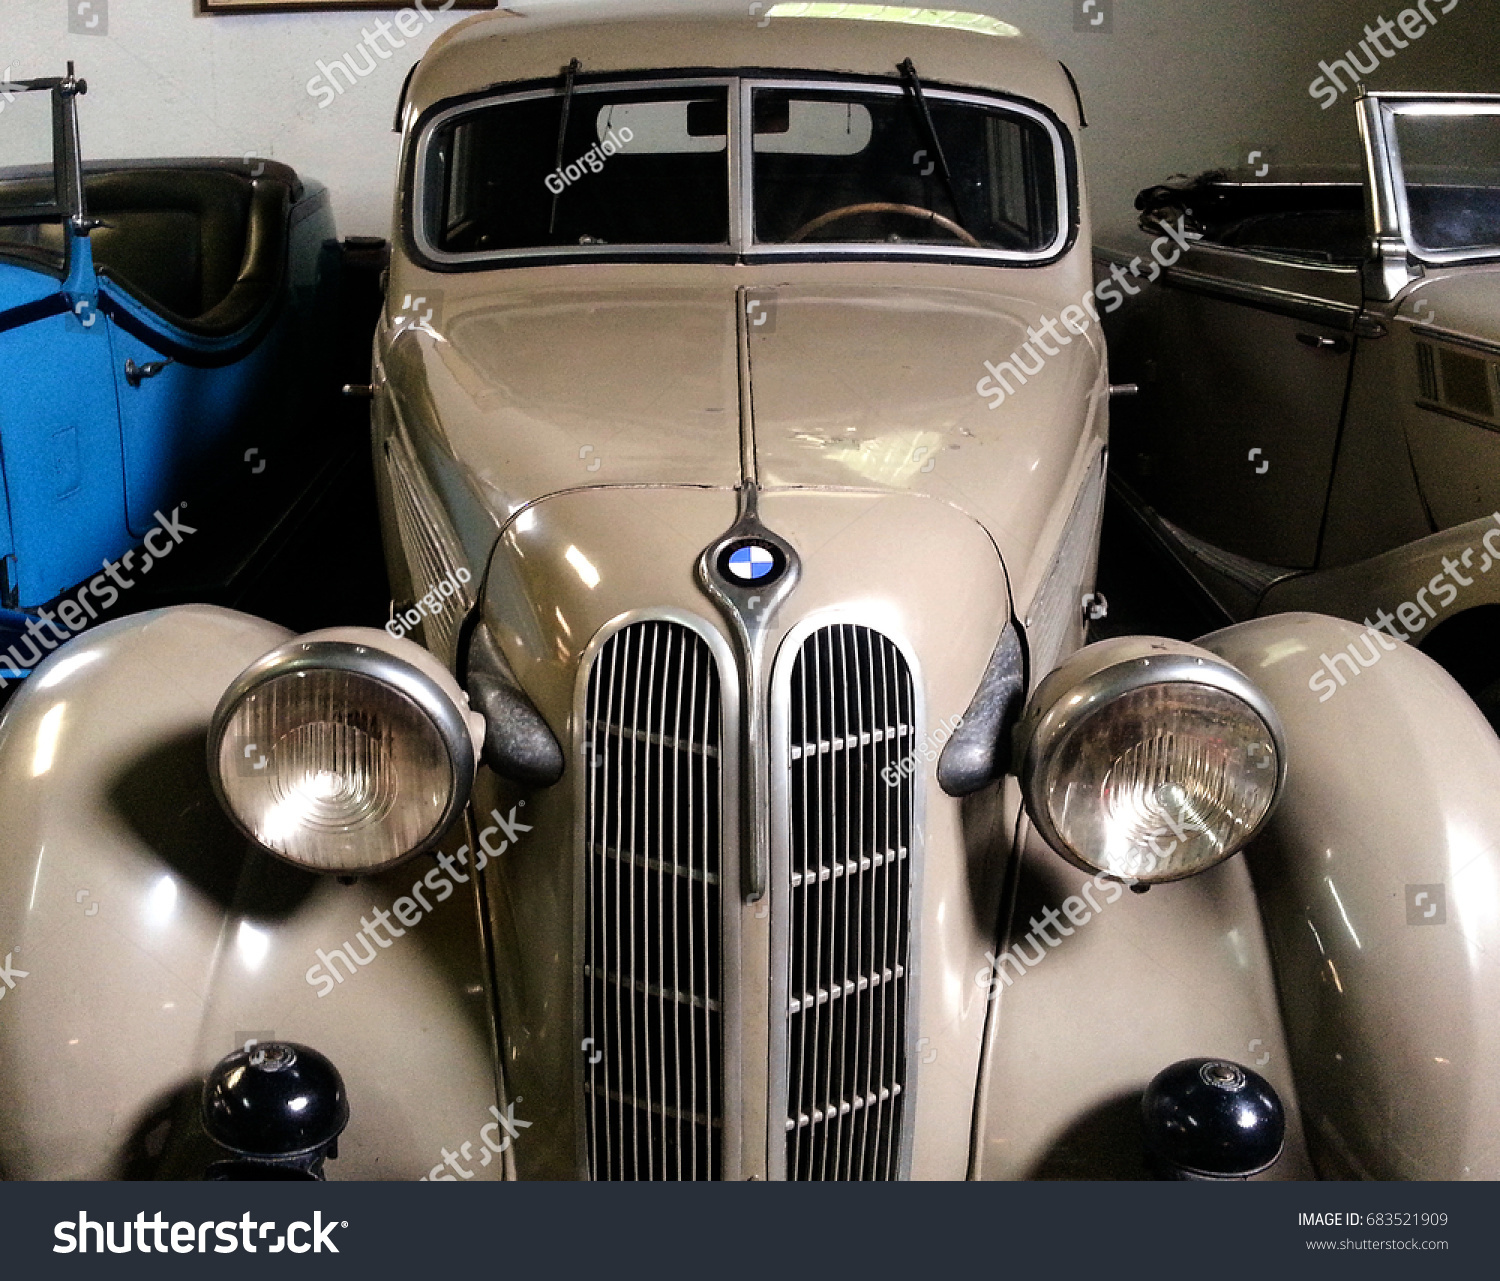 Sils Girona Spain May 252014 Cars Museum Stock Photo (Edit Now ...